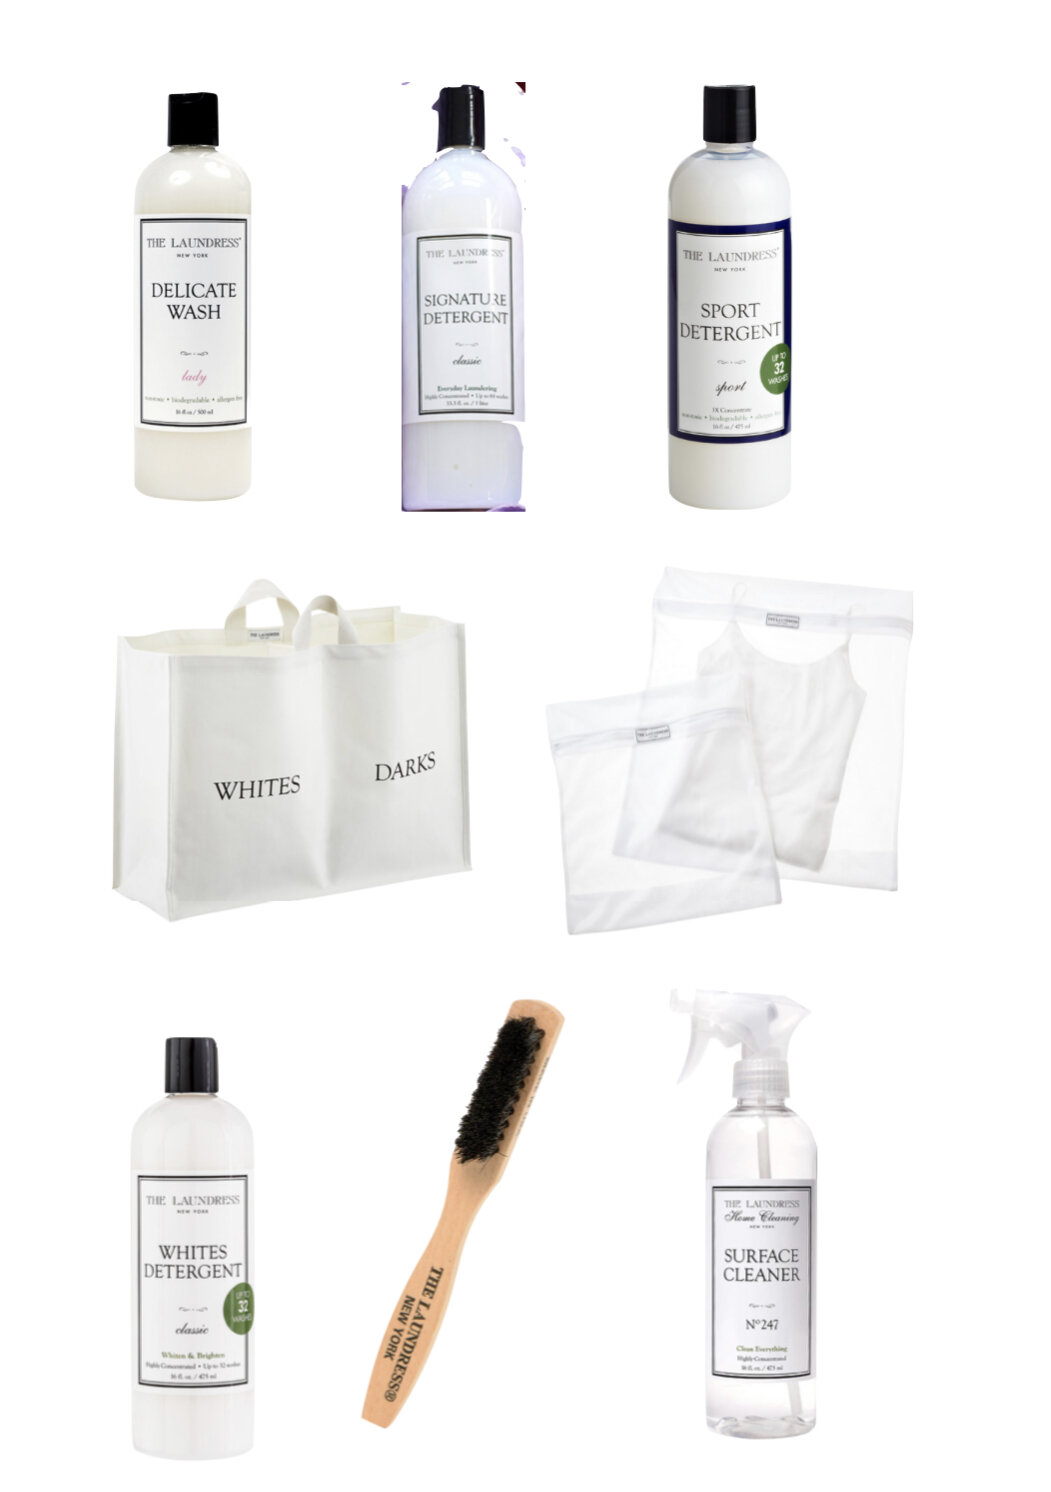 25% OFF THE LAUNDRESS PRODUCTS